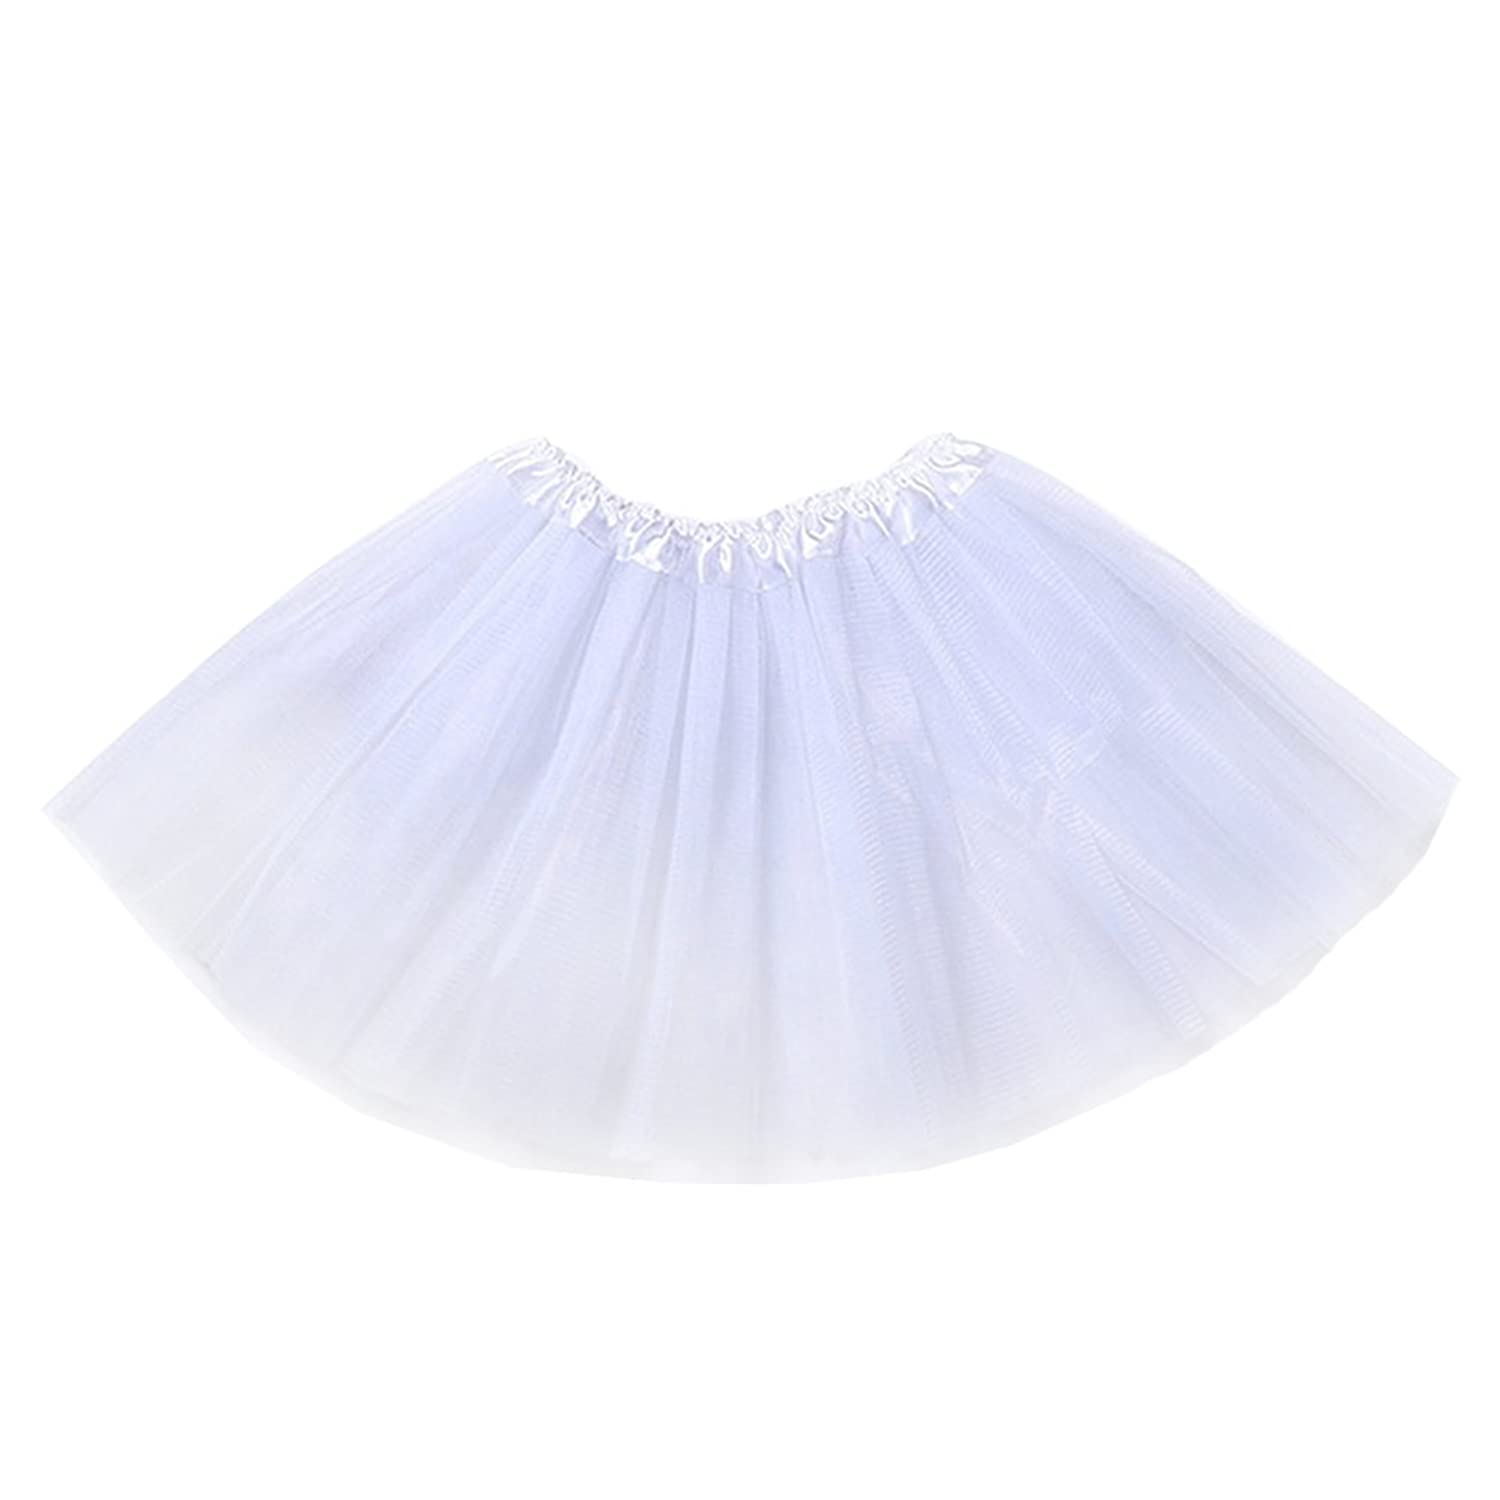 a3404cbaea [MATERIAL]: ☆This Tutu Skirts is made of good quality tulle, soft 2 layer  lining for good protection, puffy enough for meeting your needs, good  choice for ...